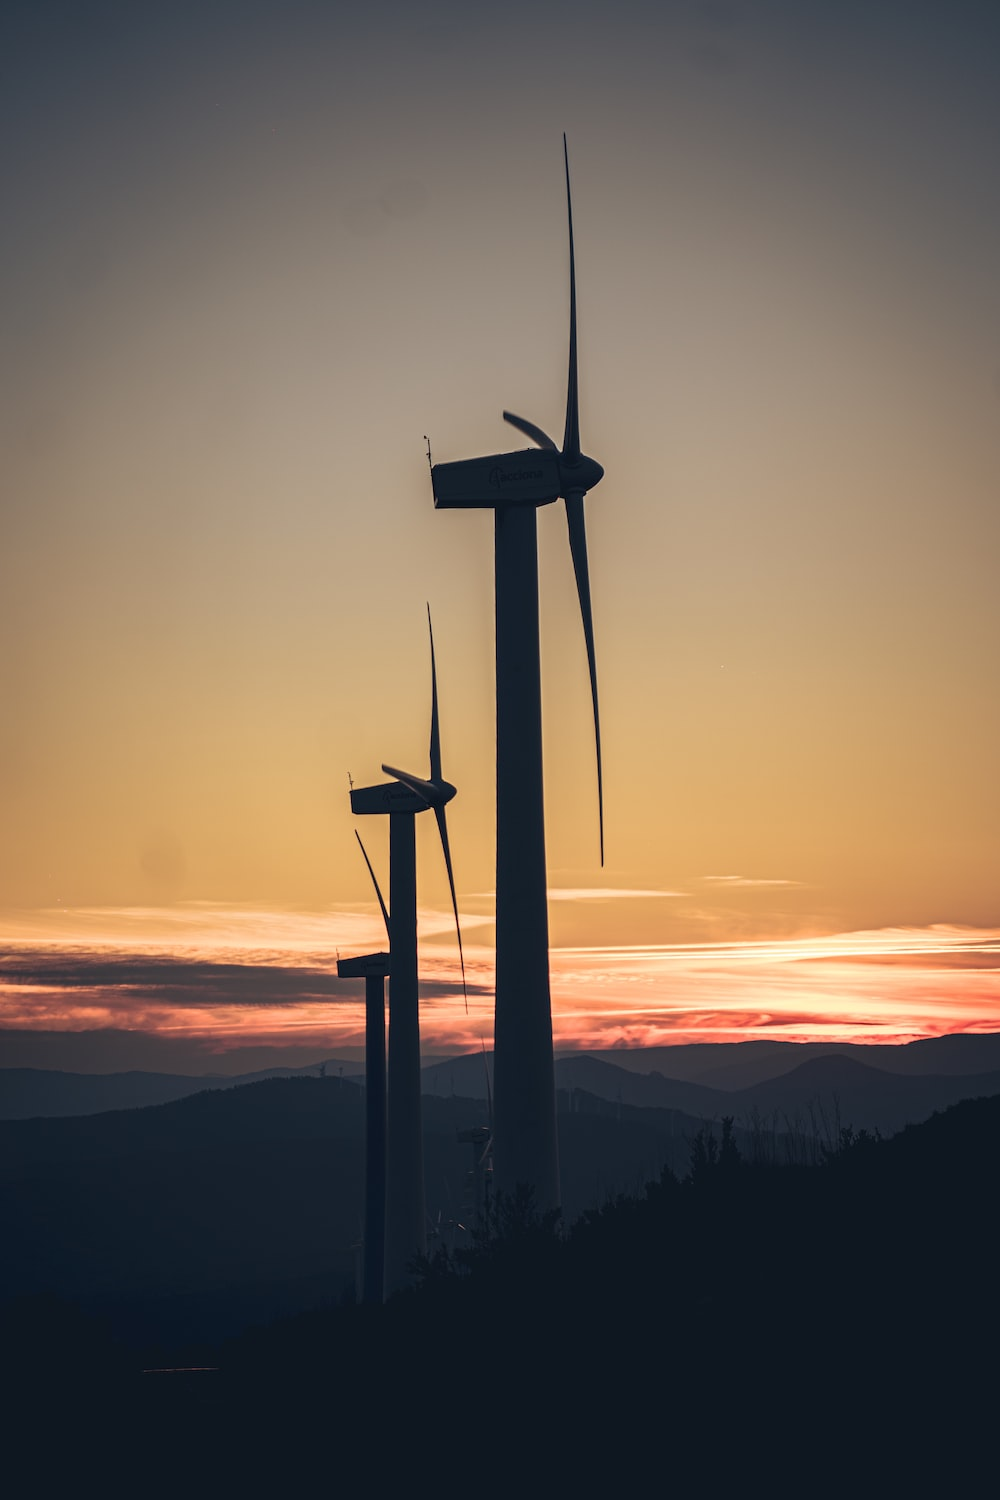 silhouette of wind mill during sunset